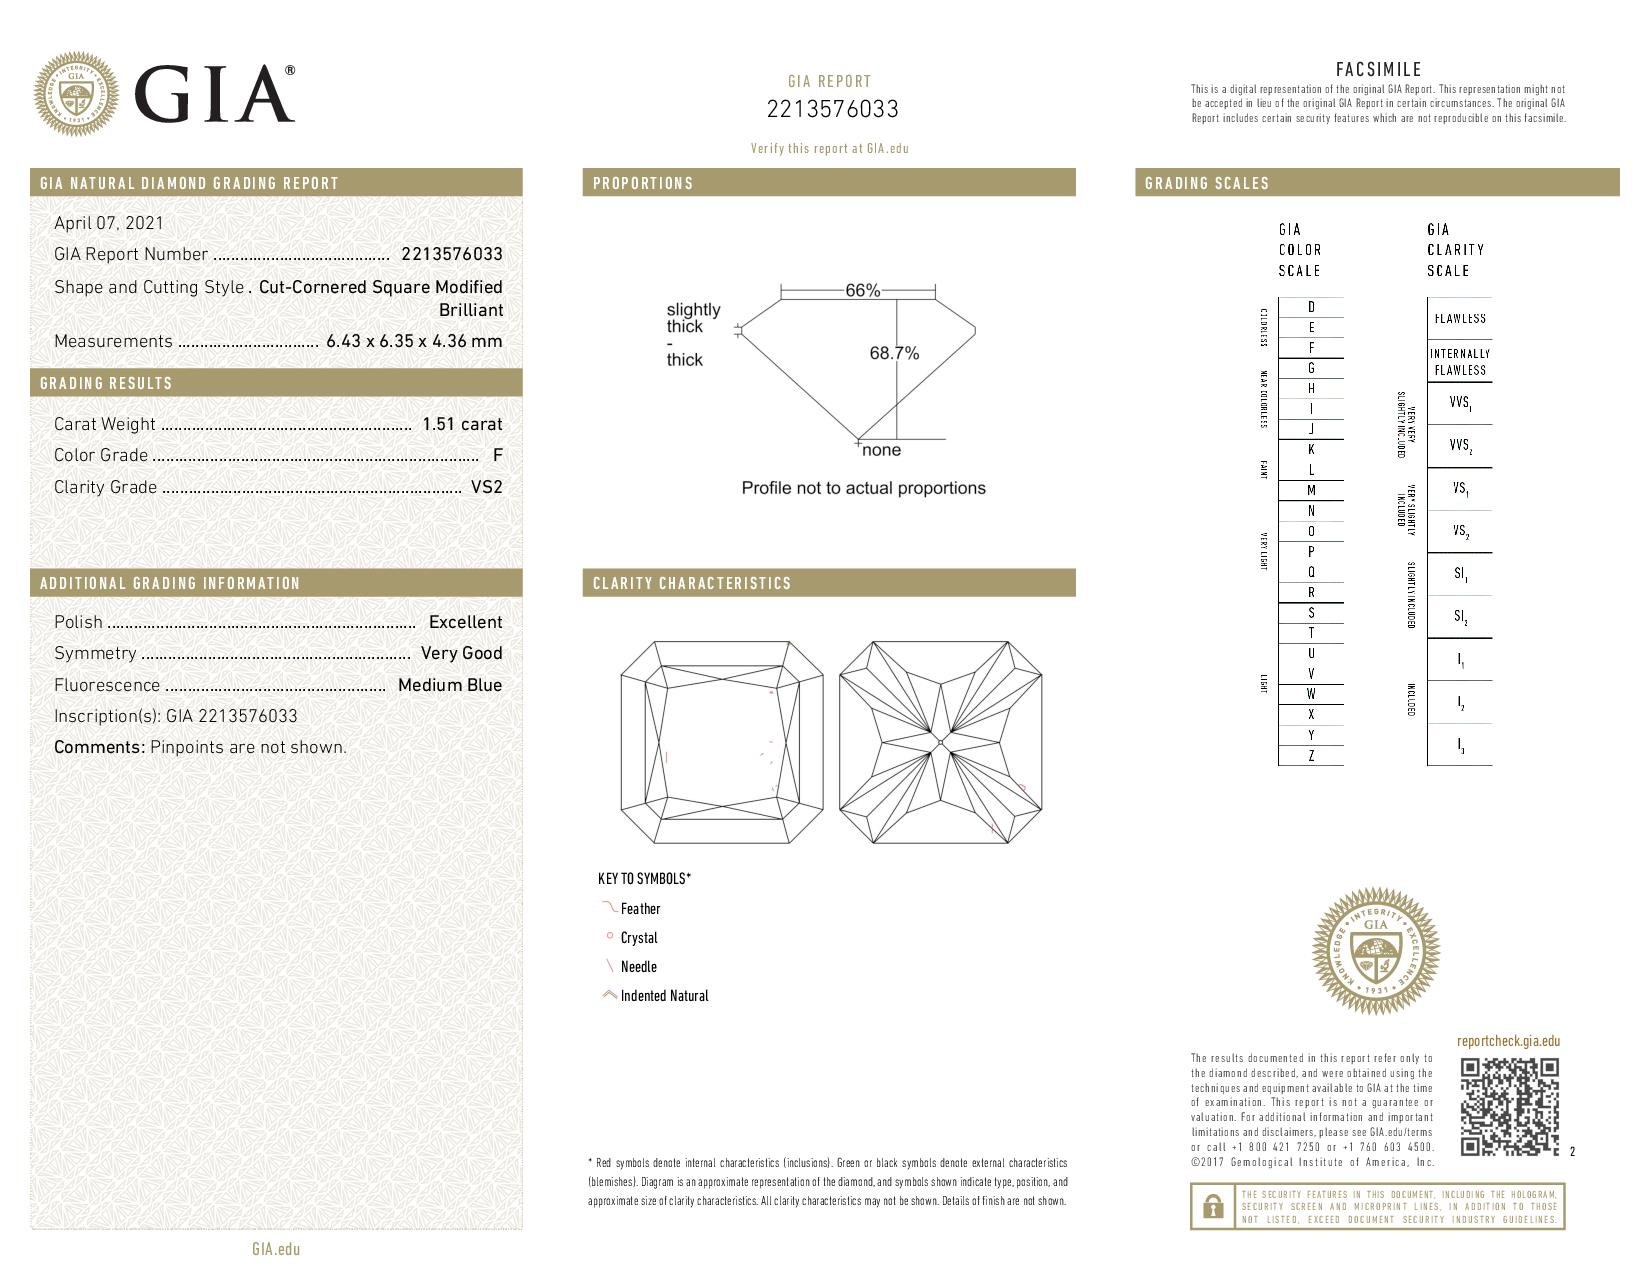 This is a 1.51 carat radiant shape, F color, VS2 clarity natural diamond accompanied by a GIA grading report.